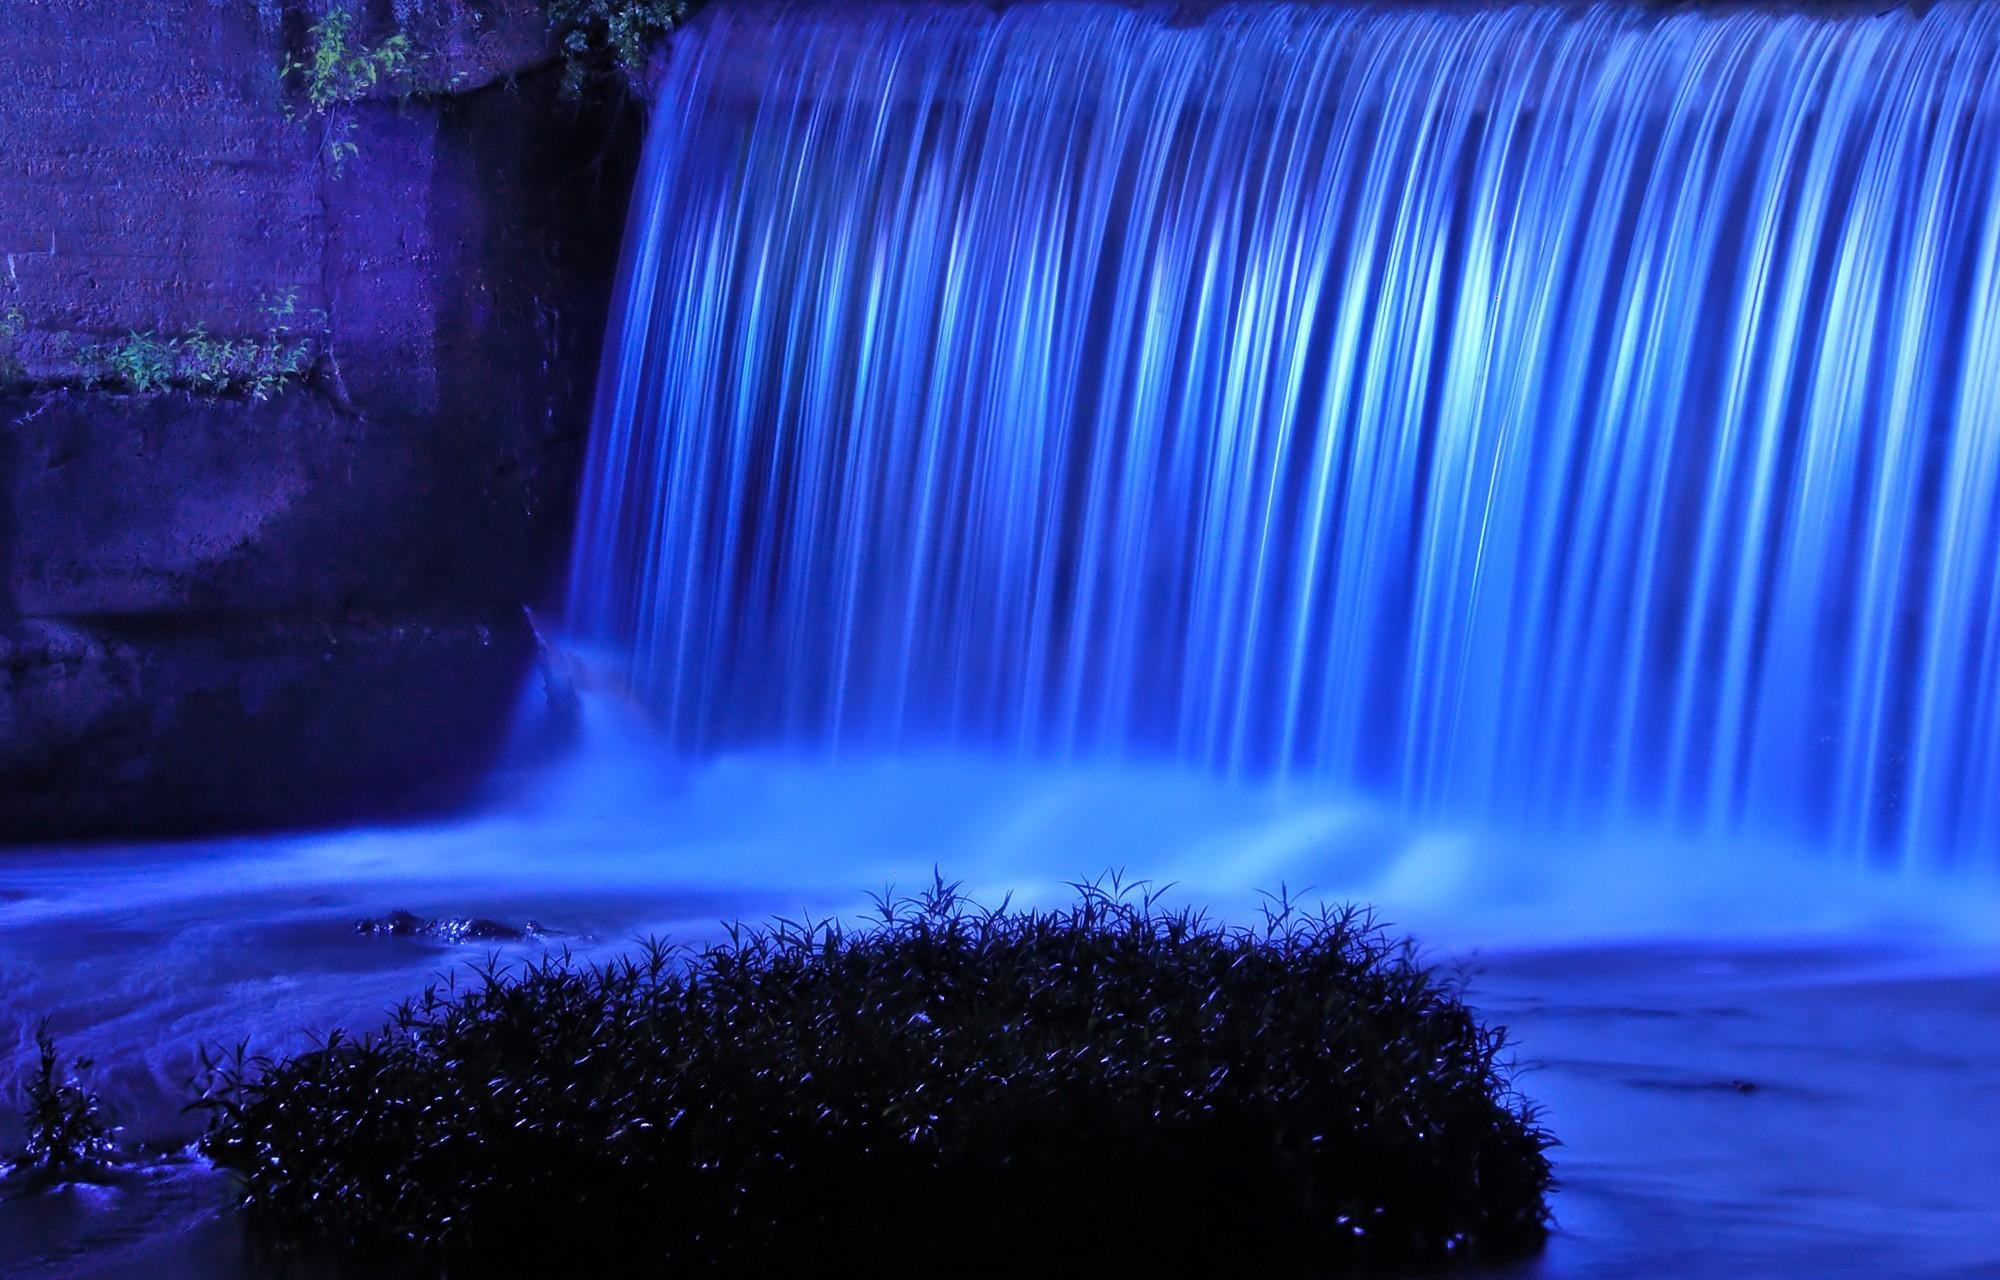 Desktop Wallpaper Fall Water Blue Waterfall Wallpaper Colorful Wallpaper Better